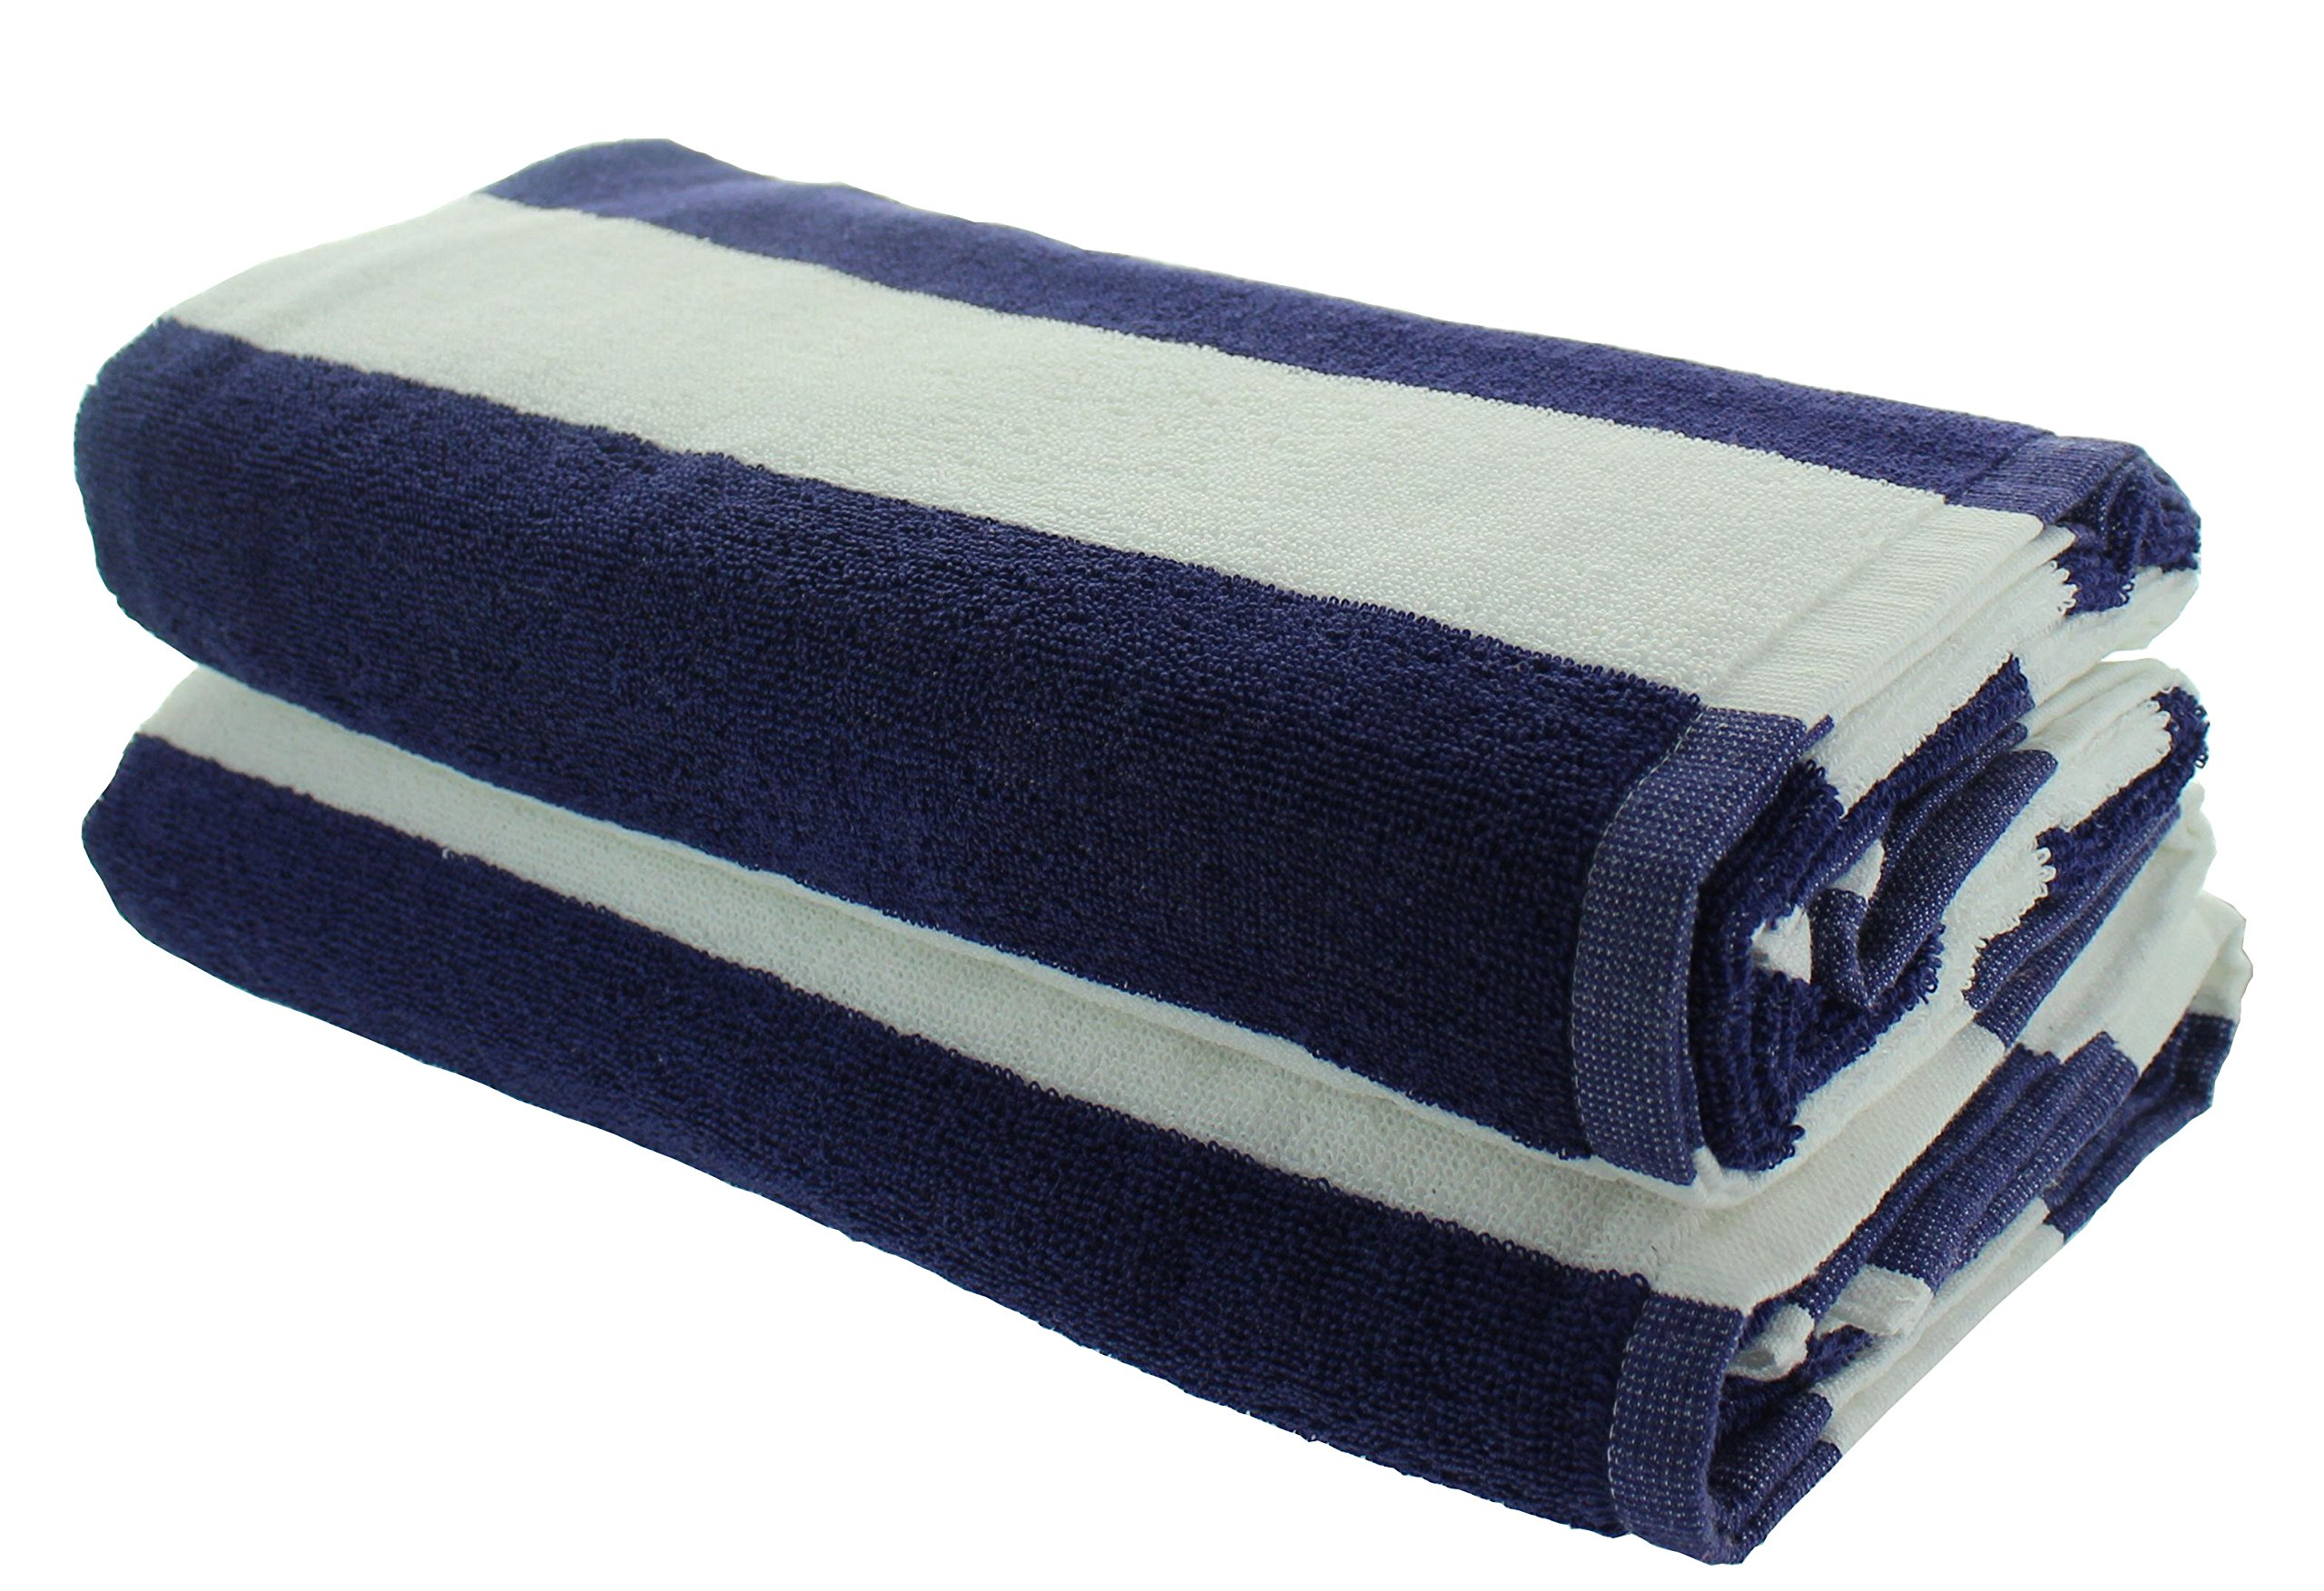 Everyday Resort Quality Cabana Beach Towels - Pack of 2 Cabana Navy Blue Stripe Pool Towels 100% Cotton - Large 60'' by 30'' - Soft and Absorbent, Great for the Pool and the Beach!